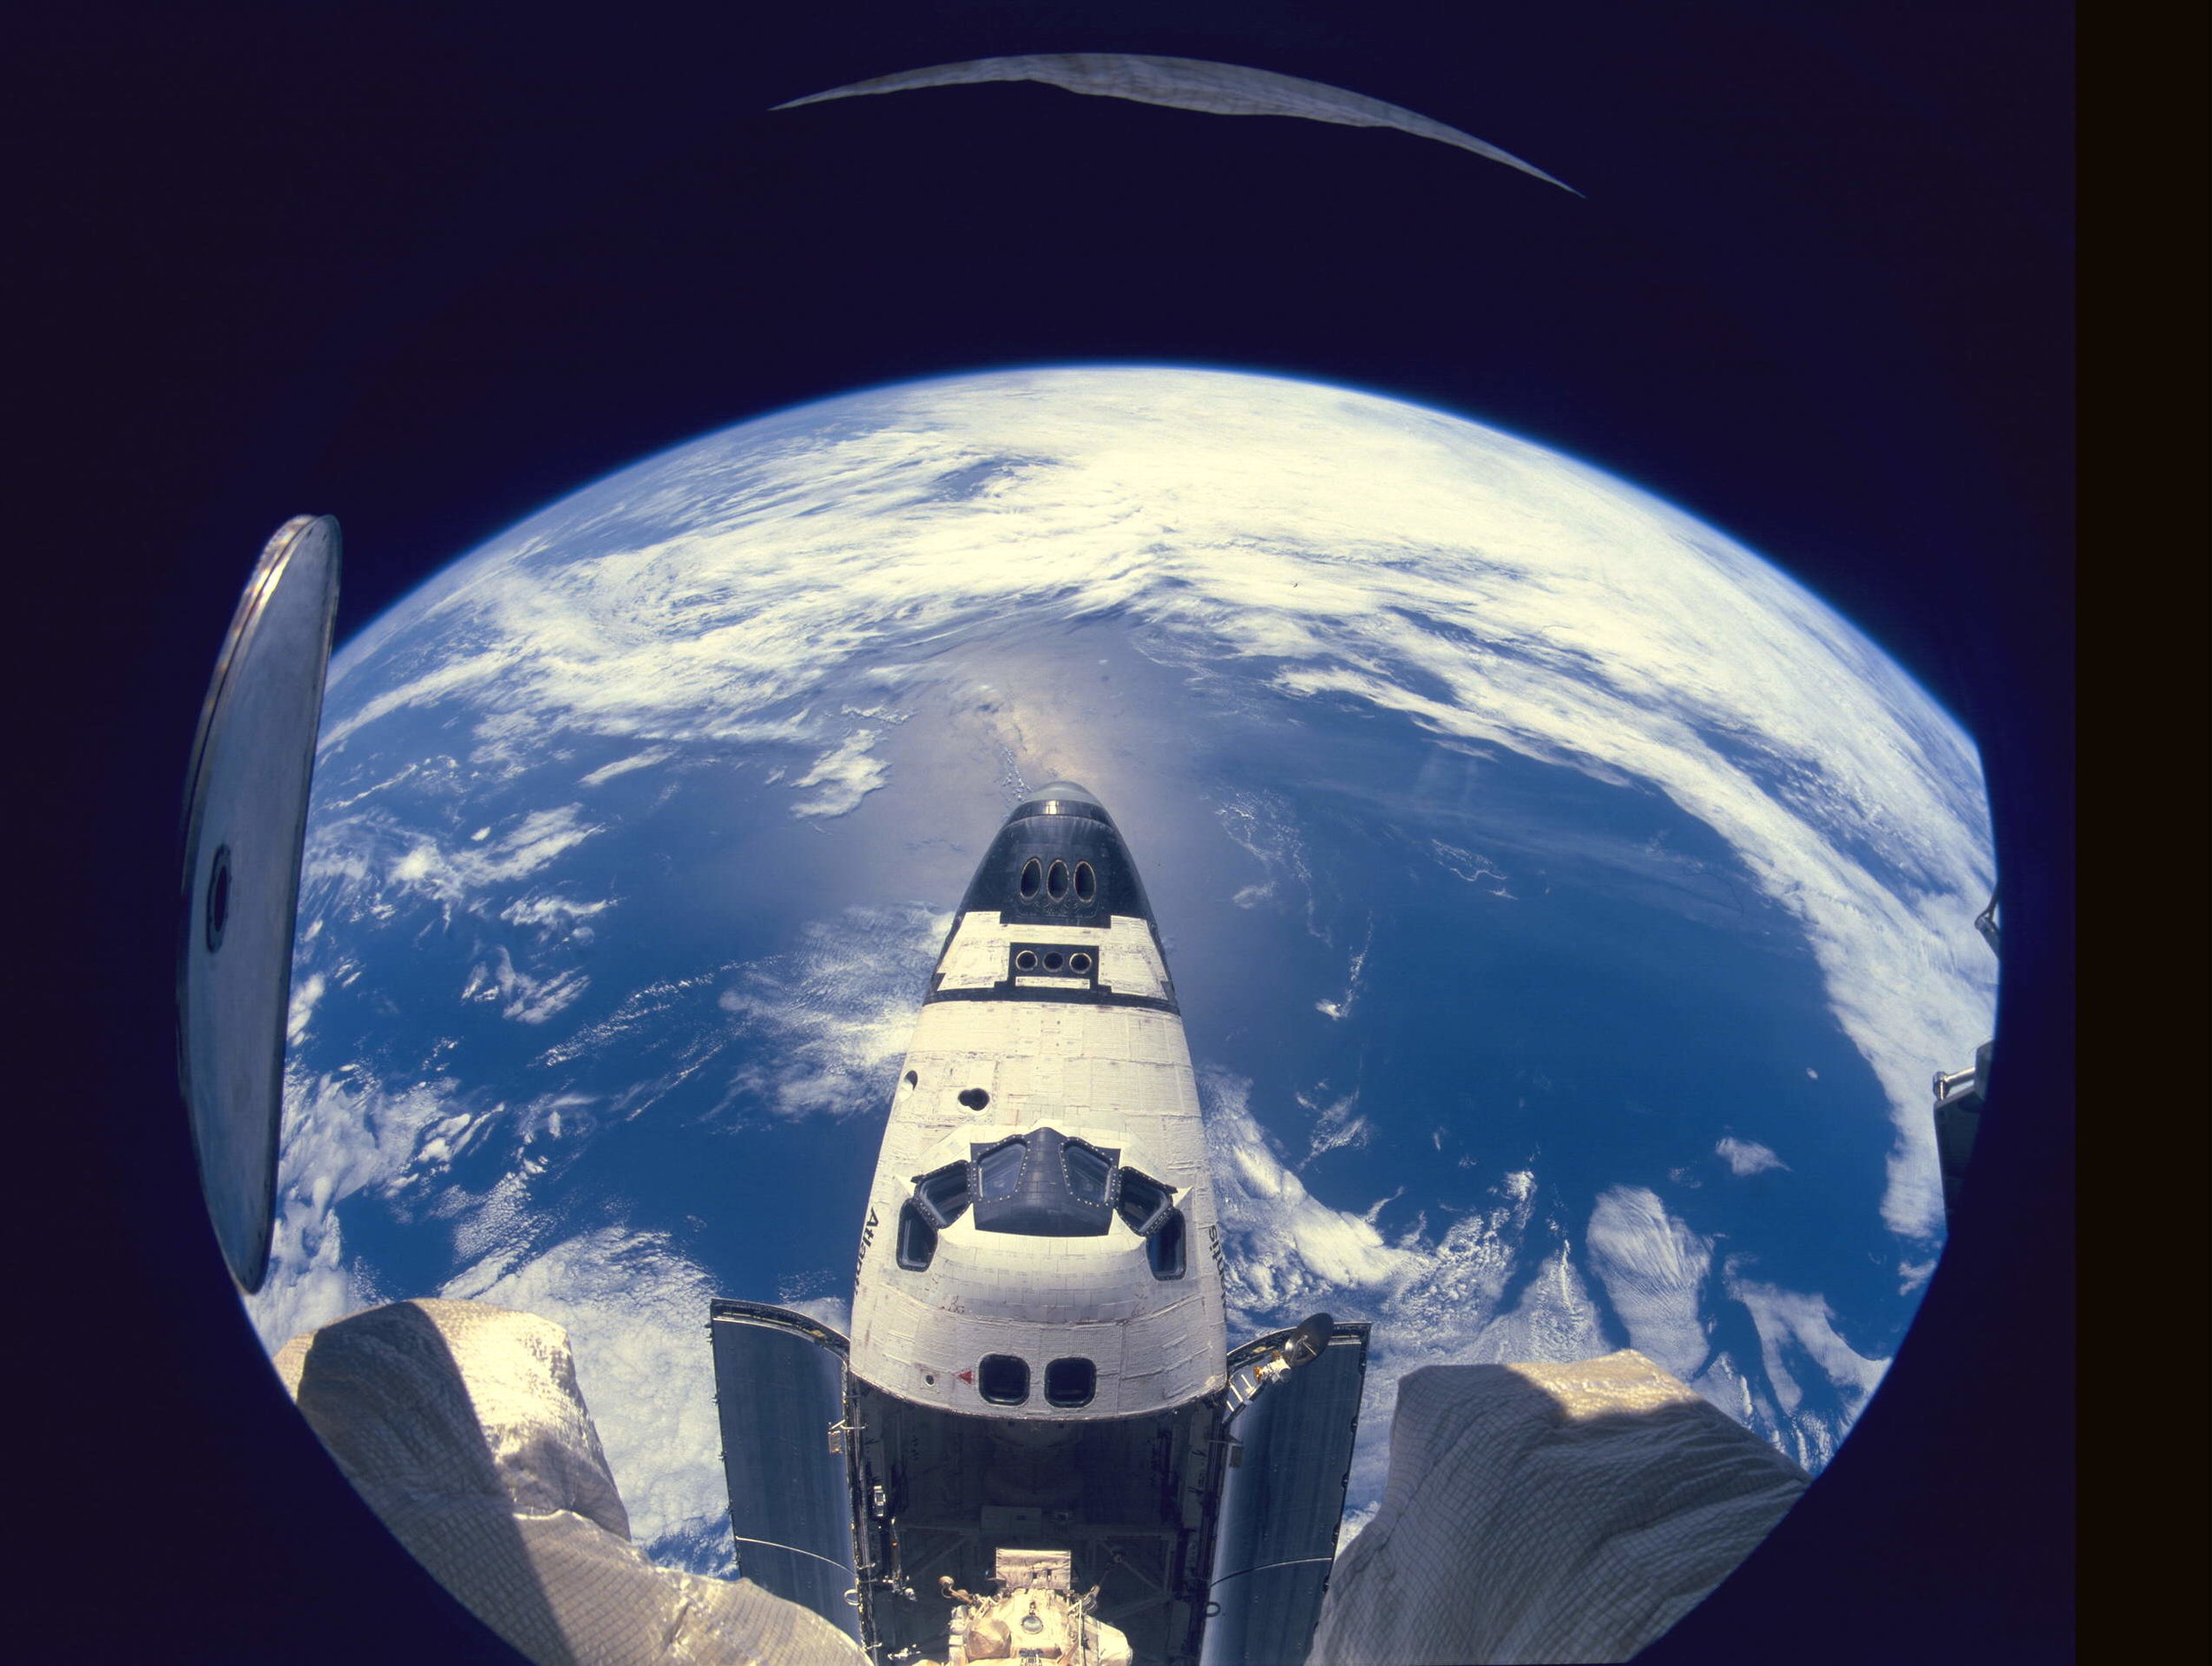 Earth_&_Atlantis_(STS-71).jpg